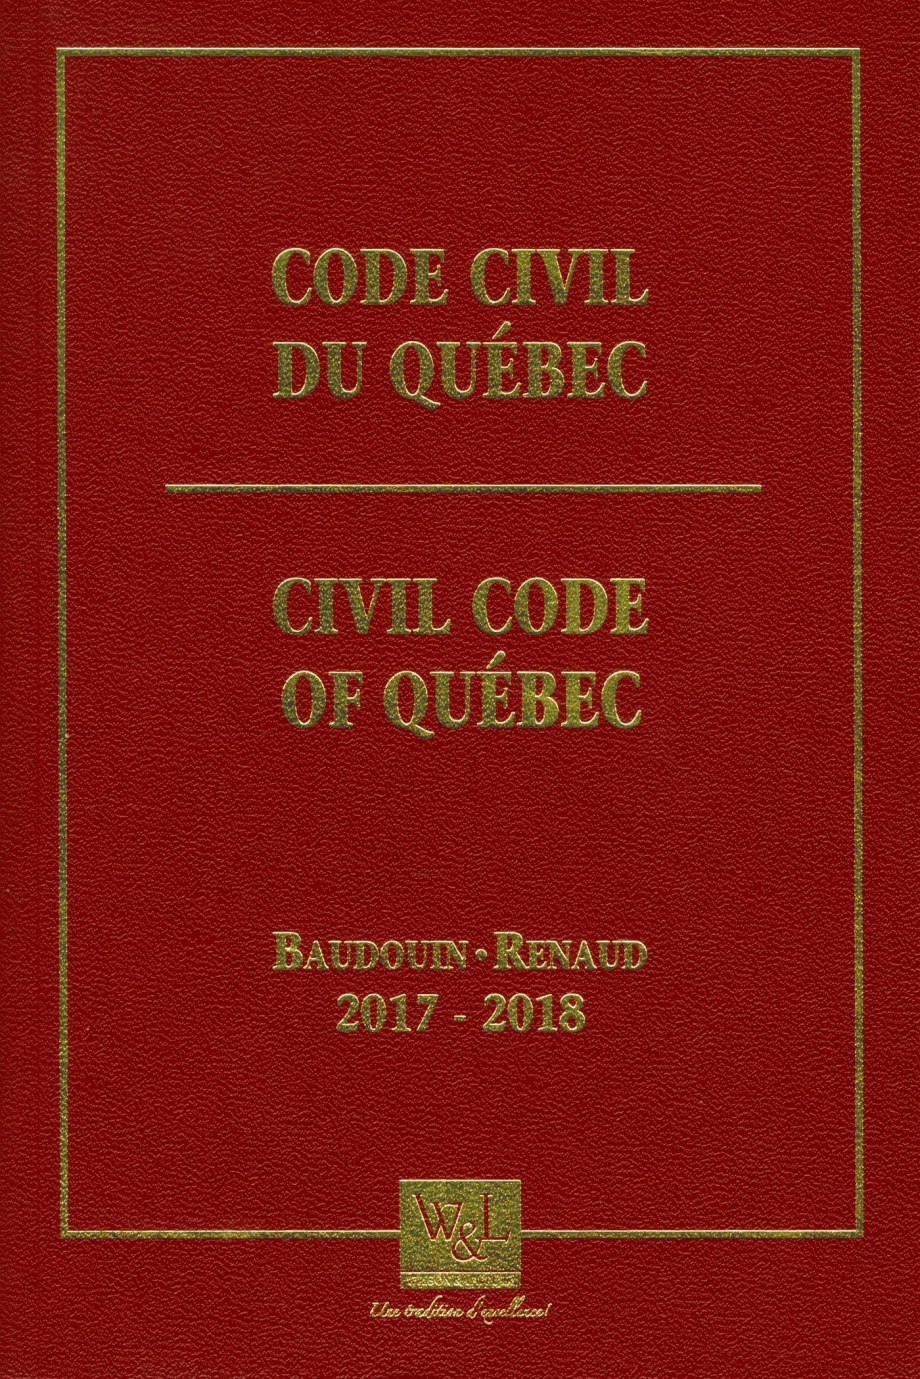 Code civil du qu bec 2017 2018 par jean louis baudouin - Table de reference pension alimentaire ...